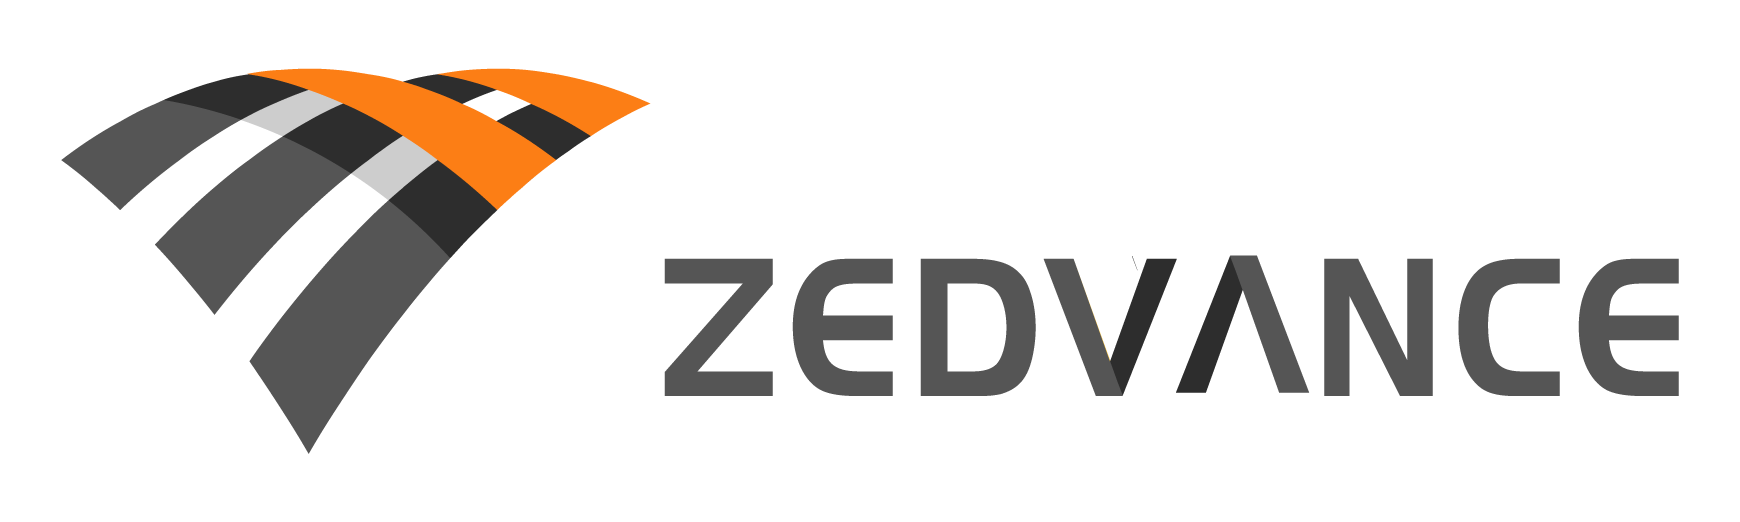 How to get a loan from Zedvance